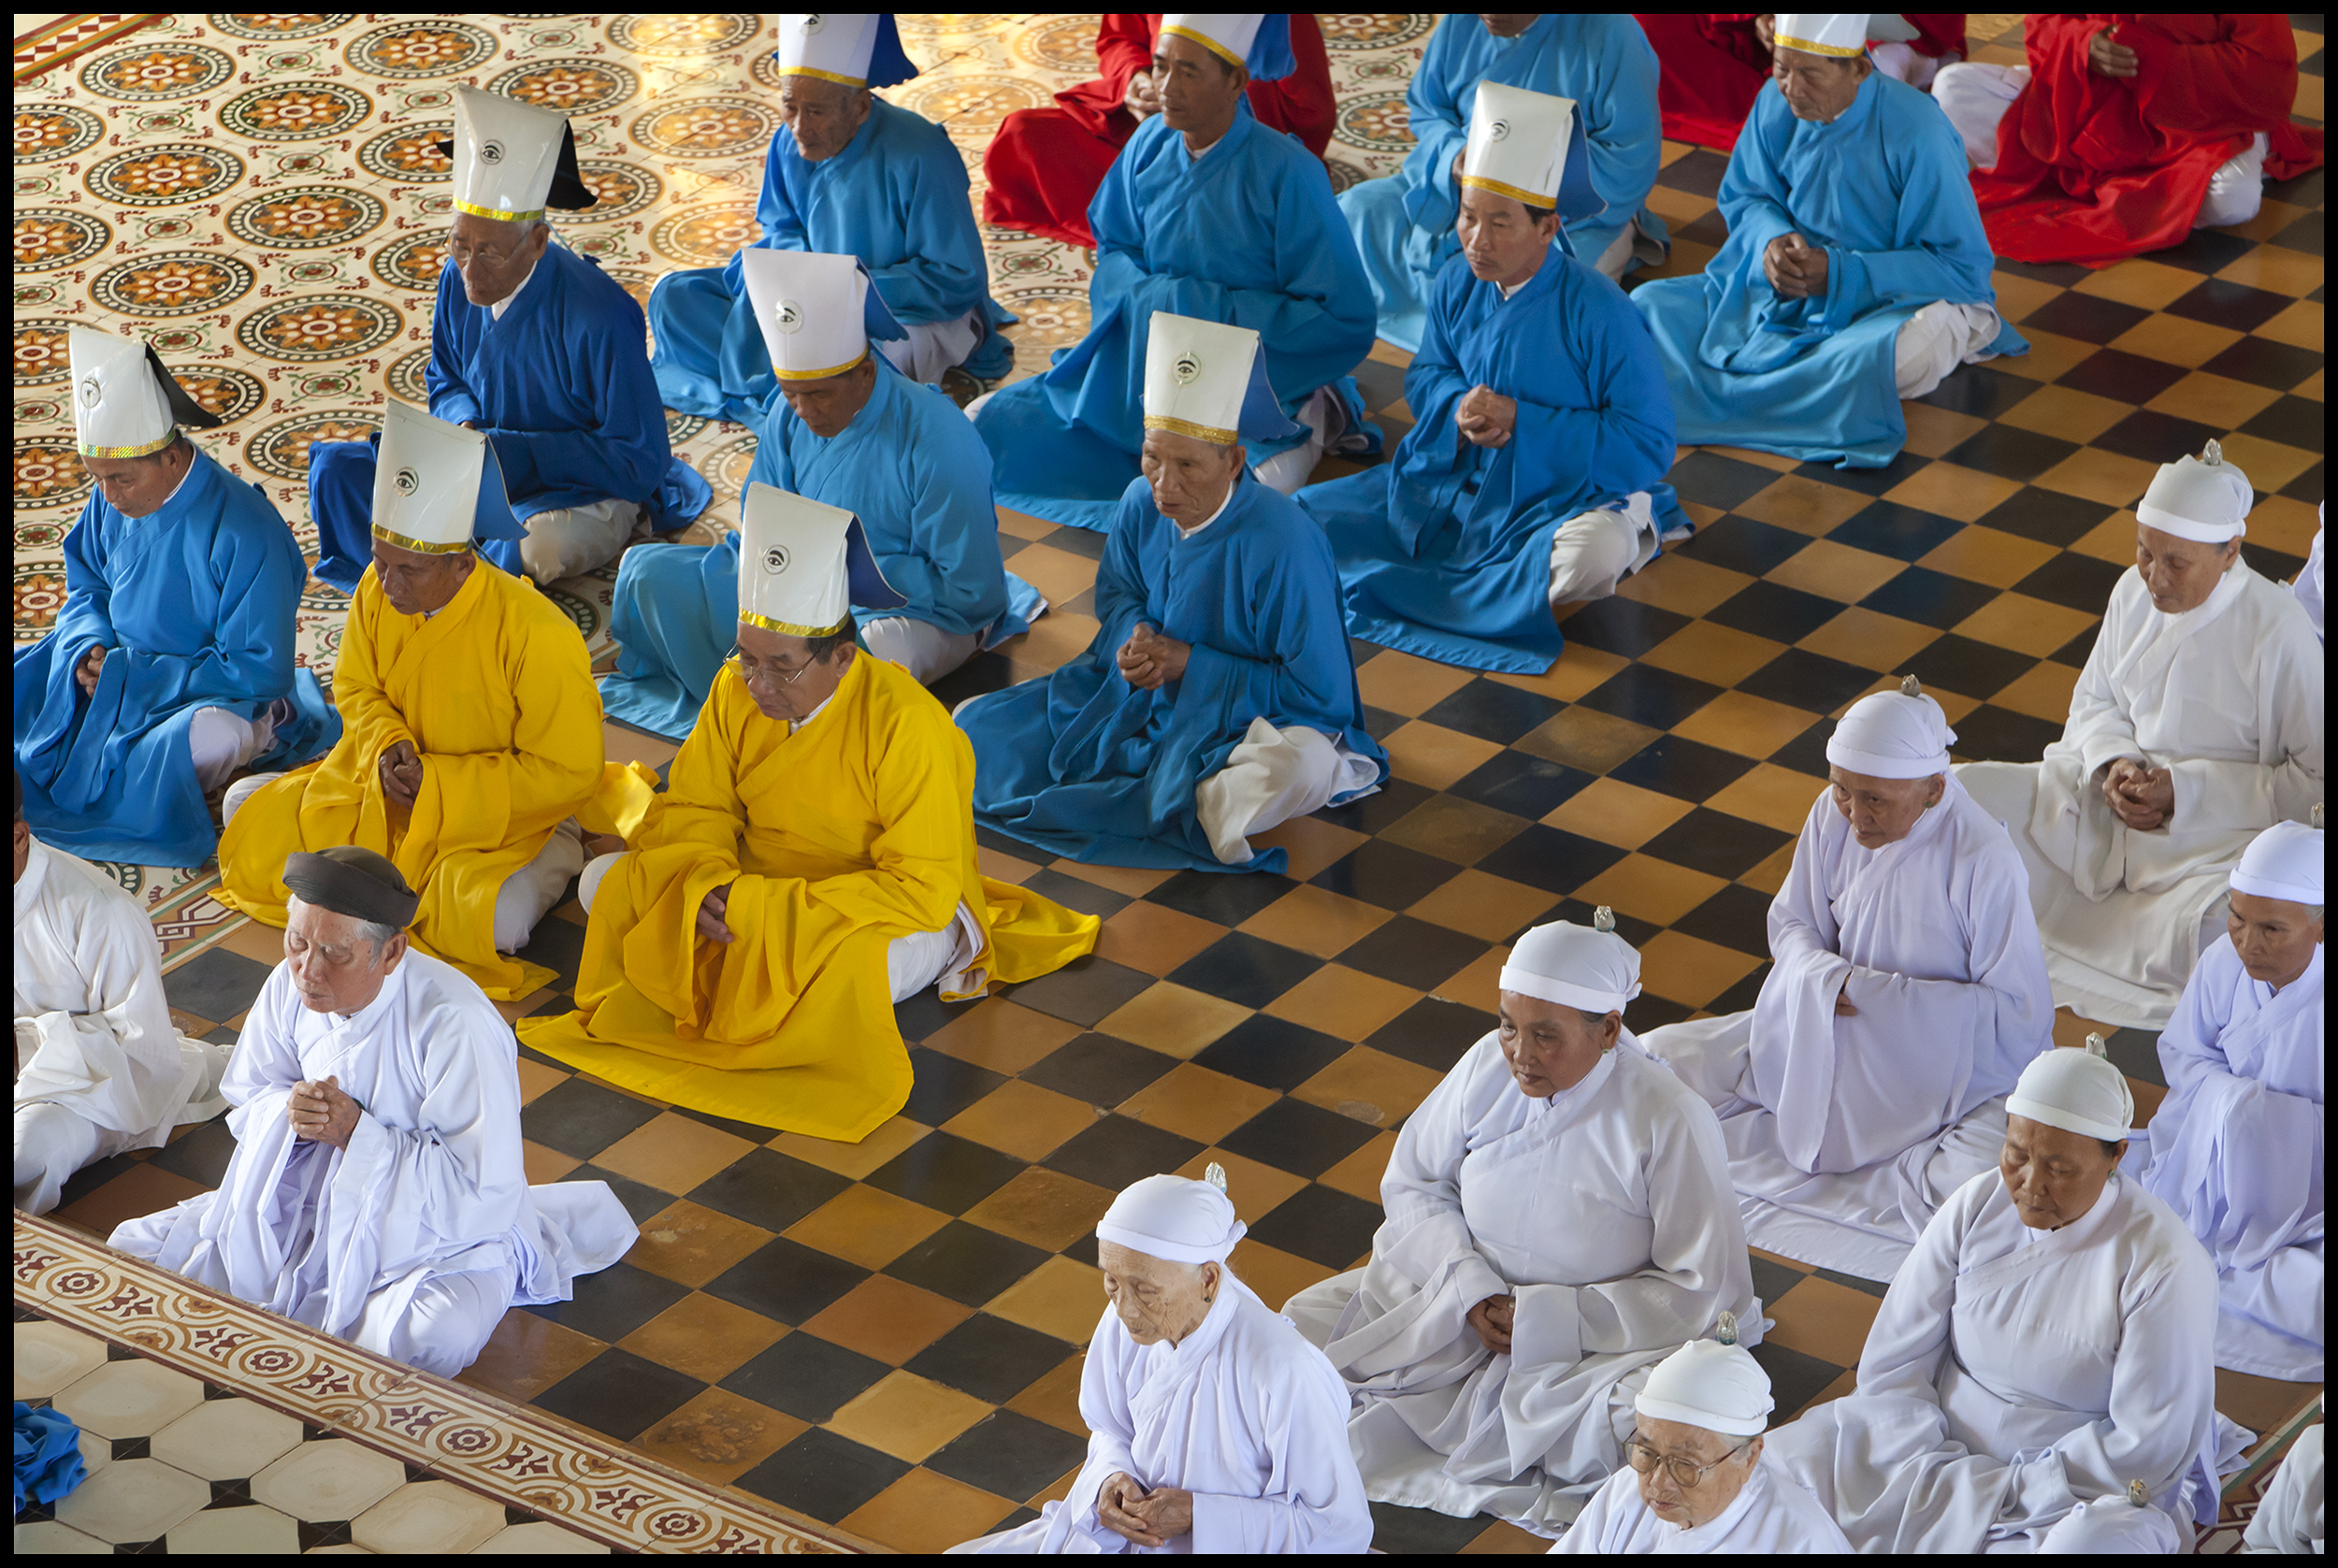 Cao Dai Holy See Worshippers-1_2010.jpg